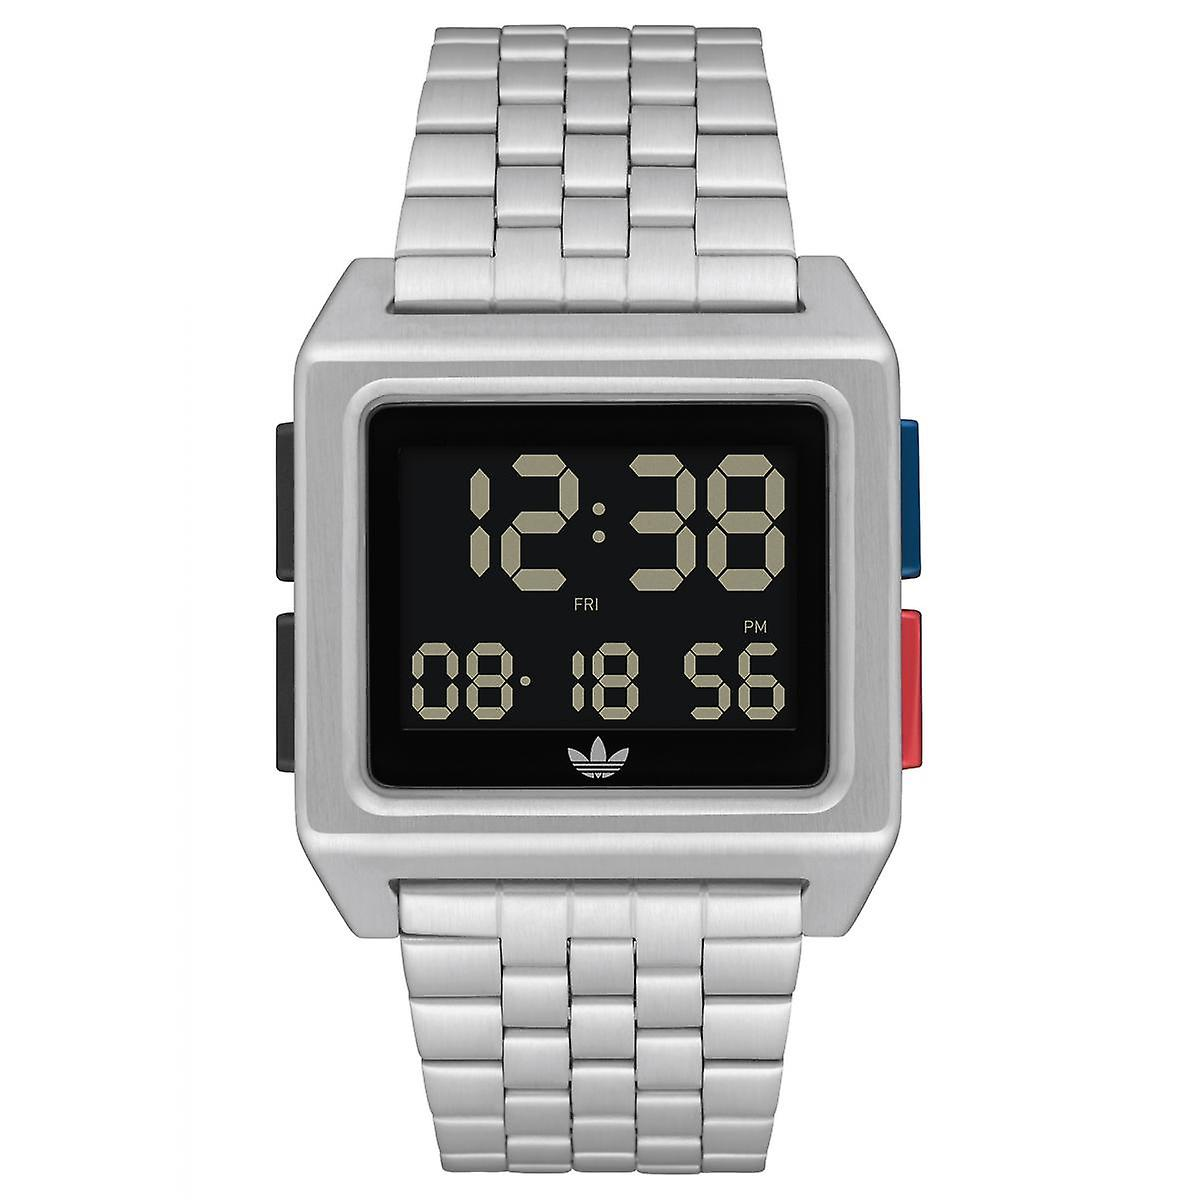 Watch Adidas Originals Z01 2924 00 steel man